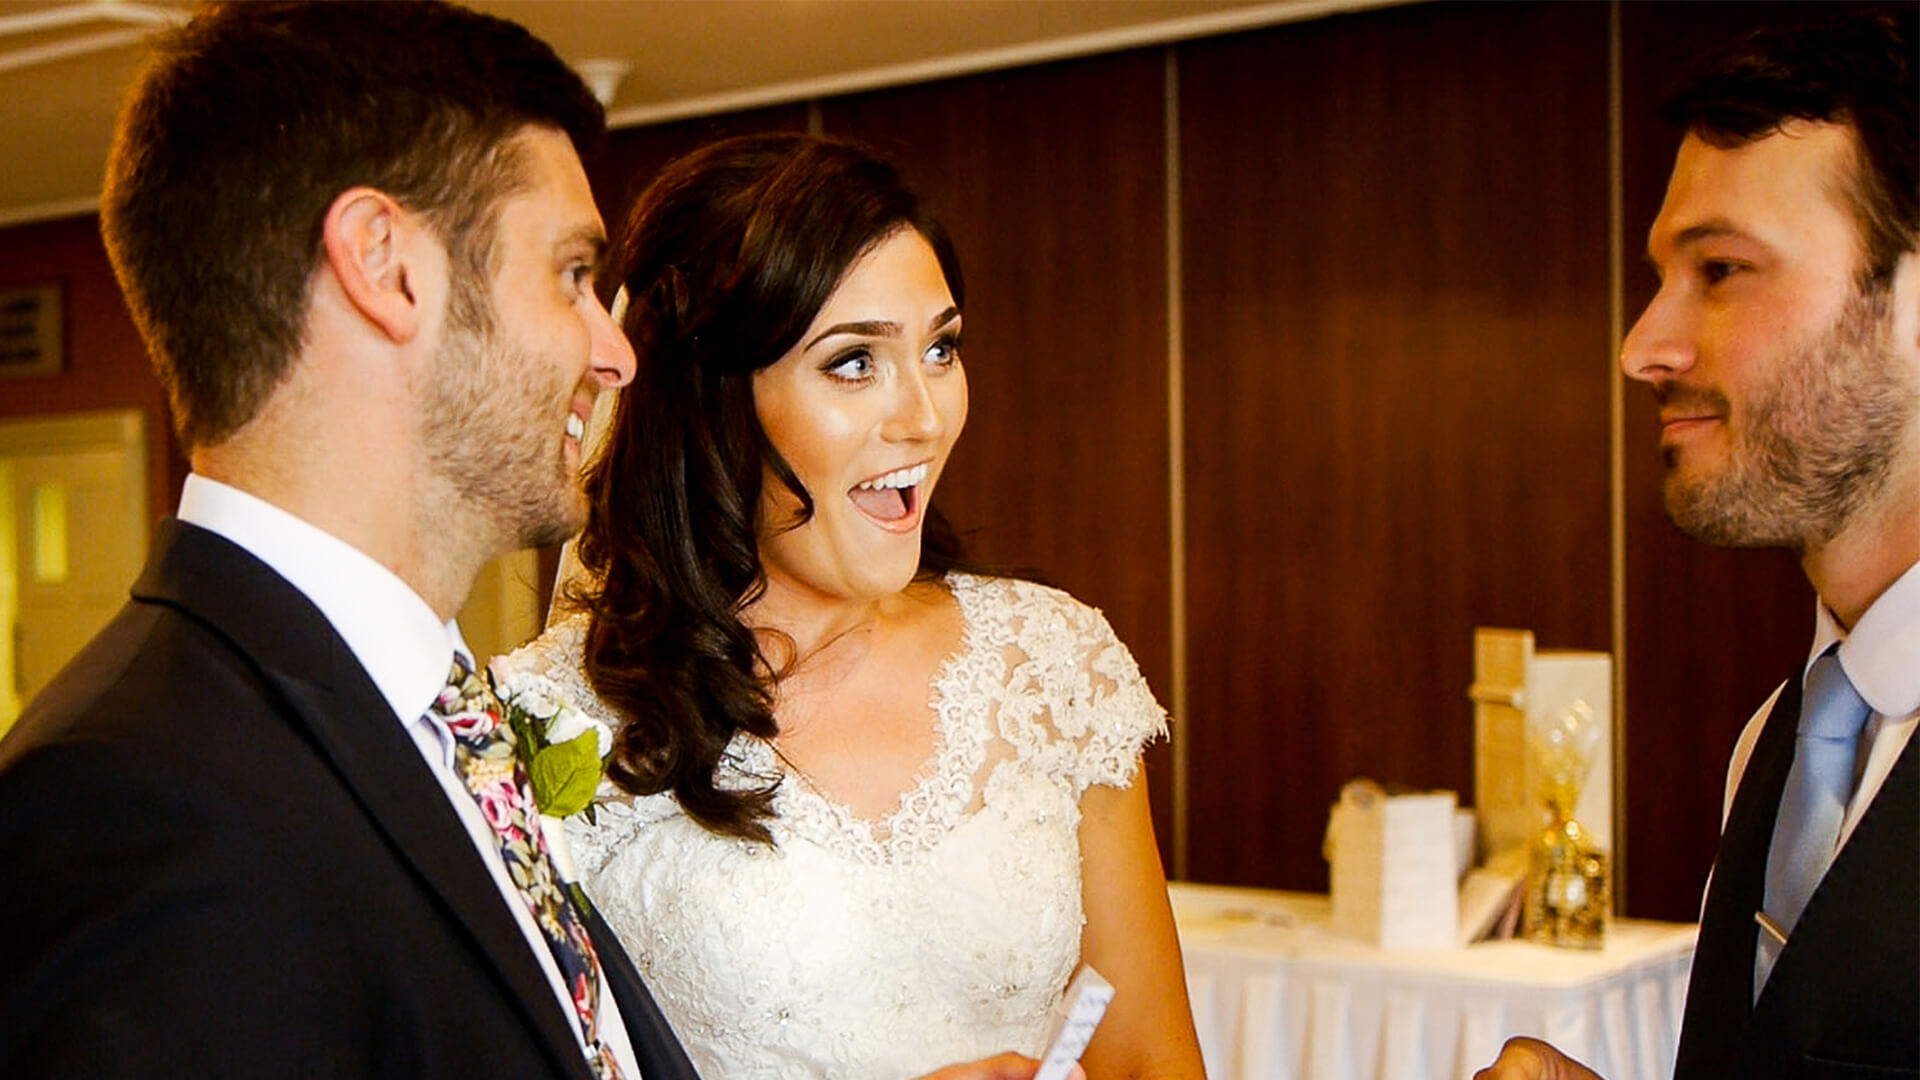 Bride and groom with guests laughing and enjoying Manchester wedding magician aaron calvert performing mind reading and hypnosis